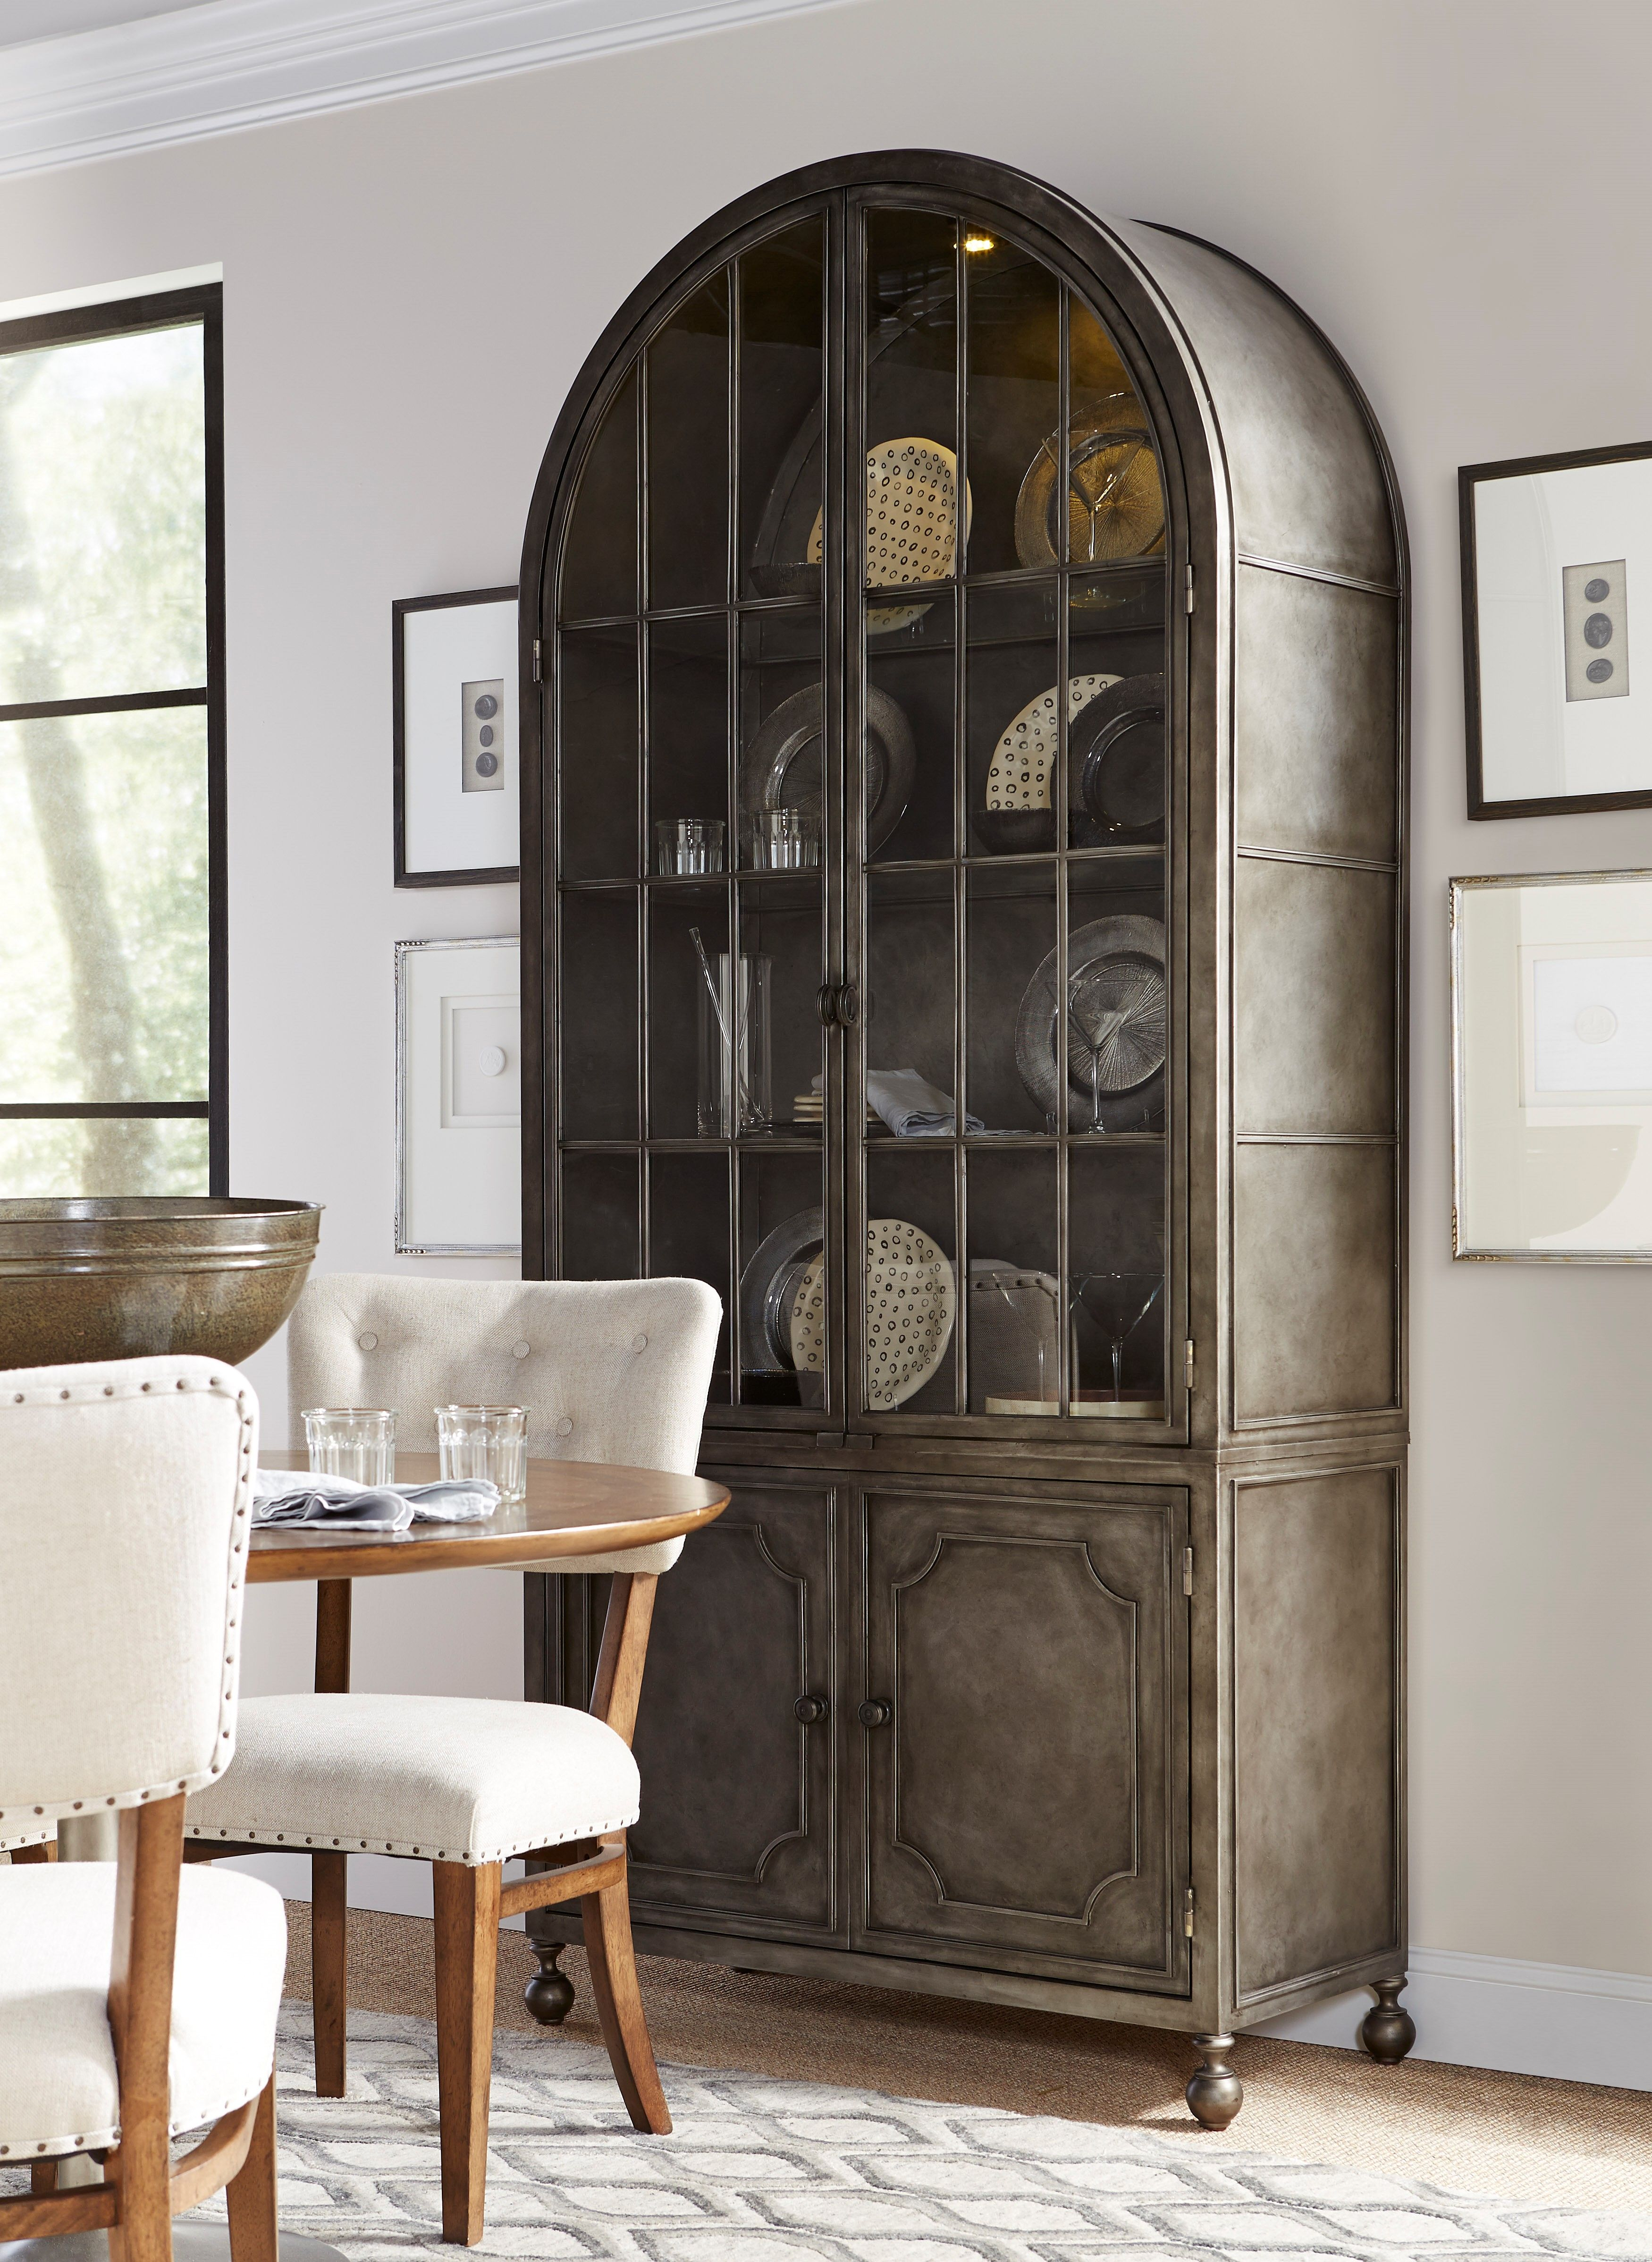 Universal Furniture Remix Metal Display Cabinet Like A Clic Song That Is Transformed With The Energy Of New Artist From